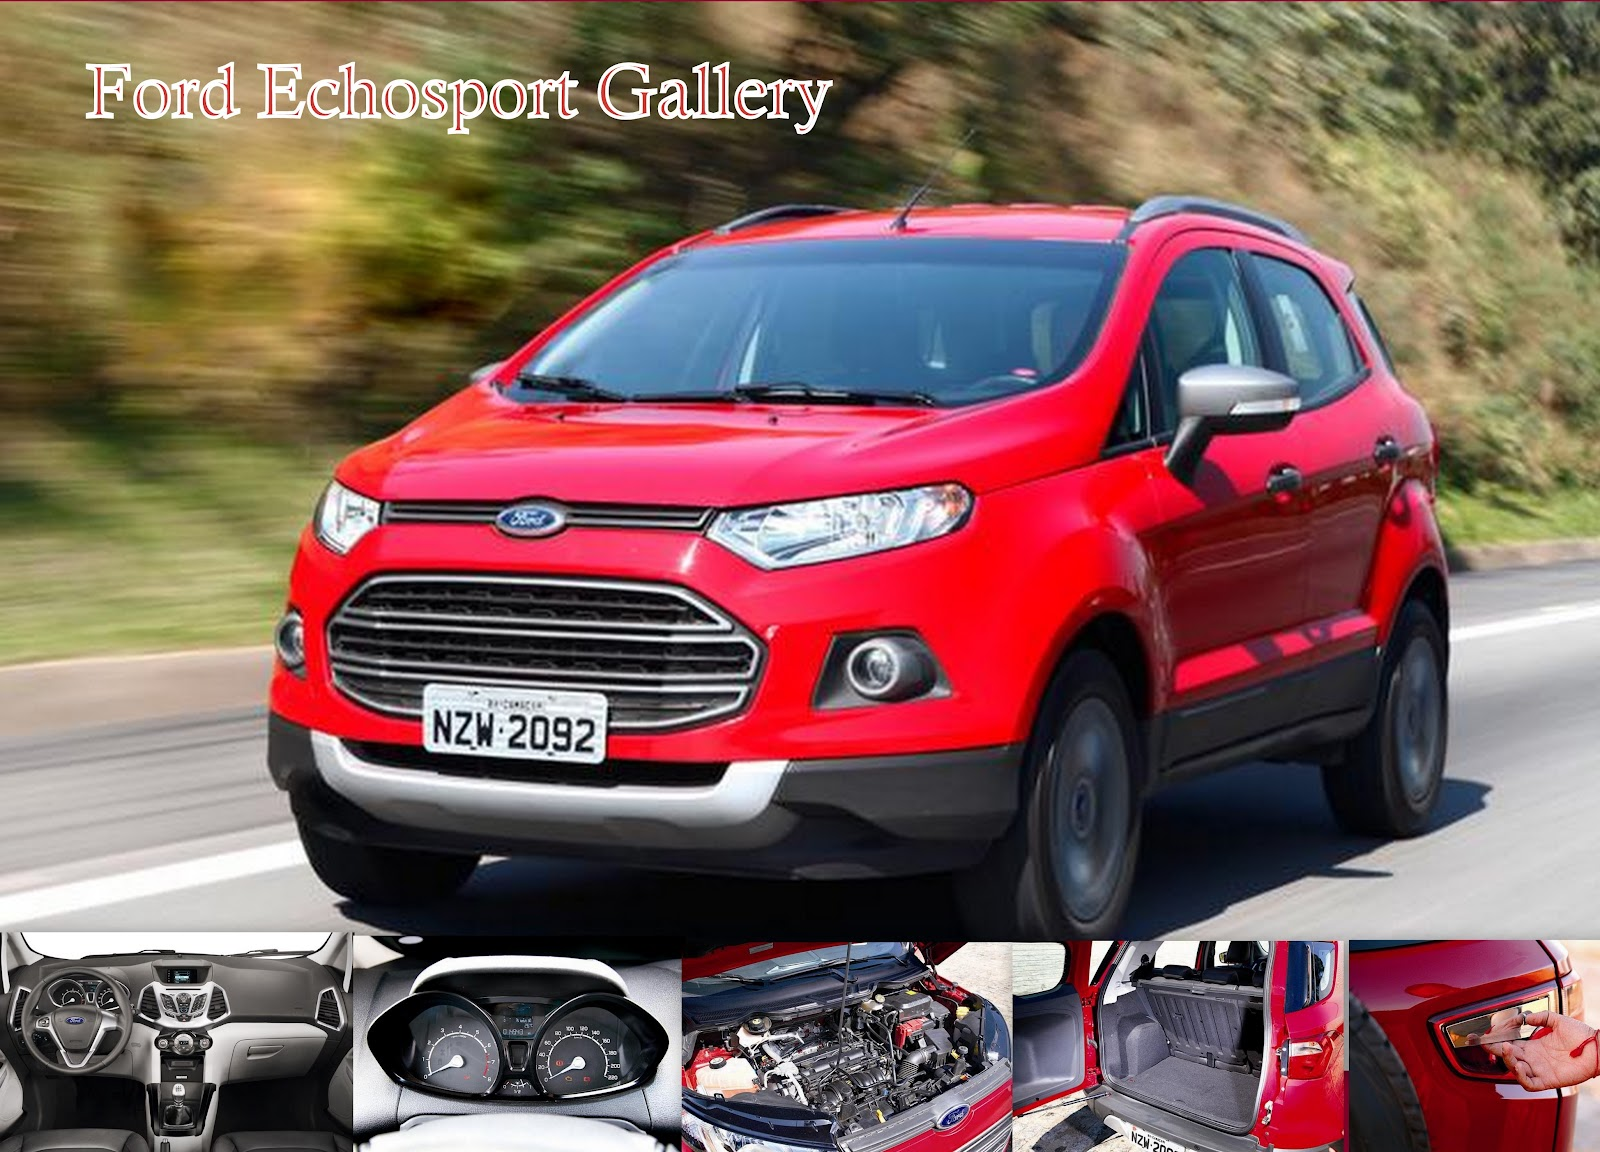 ford ecosport review test drive and video hi tech info. Black Bedroom Furniture Sets. Home Design Ideas